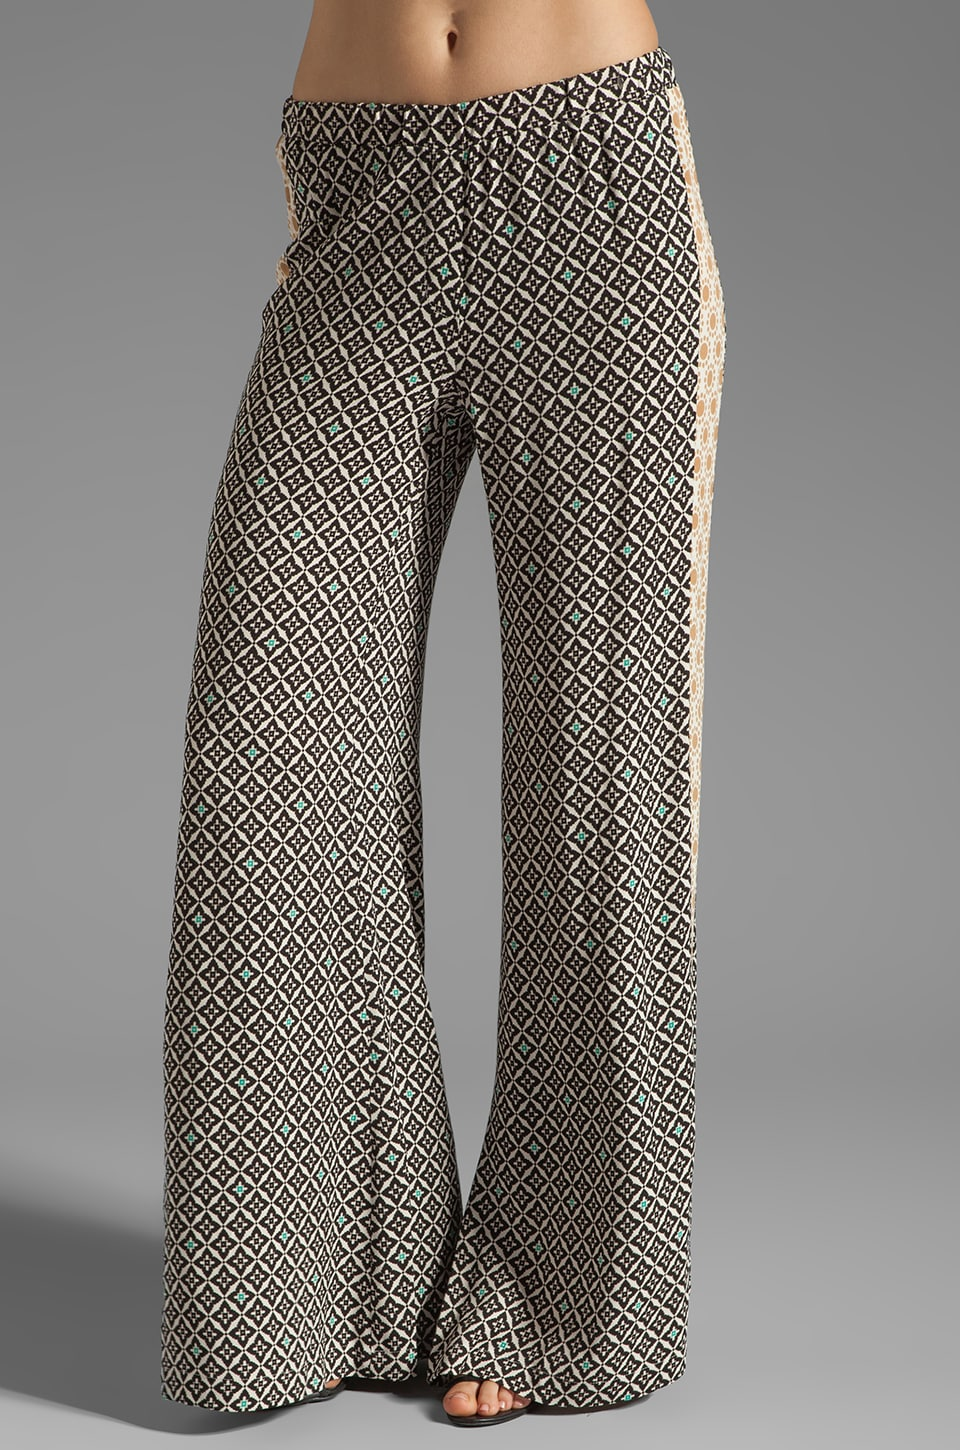 Ella Moss Sun Tile Pant in Black